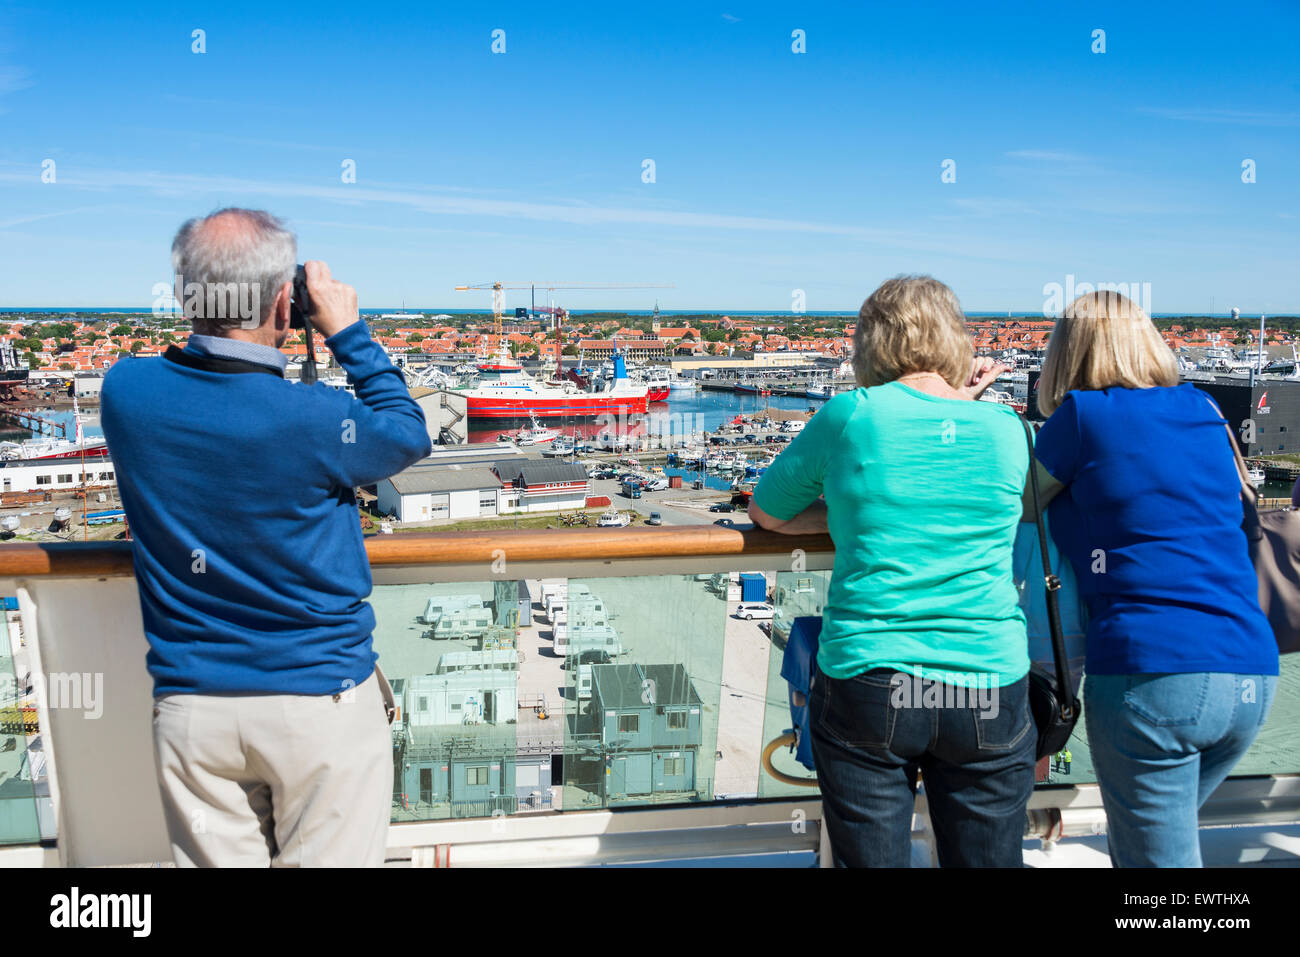 Passengers viewing from deck of Royal Caribbean 'Brilliance of the seas' cruise ship, Skagen, North Jutland - Stock Image